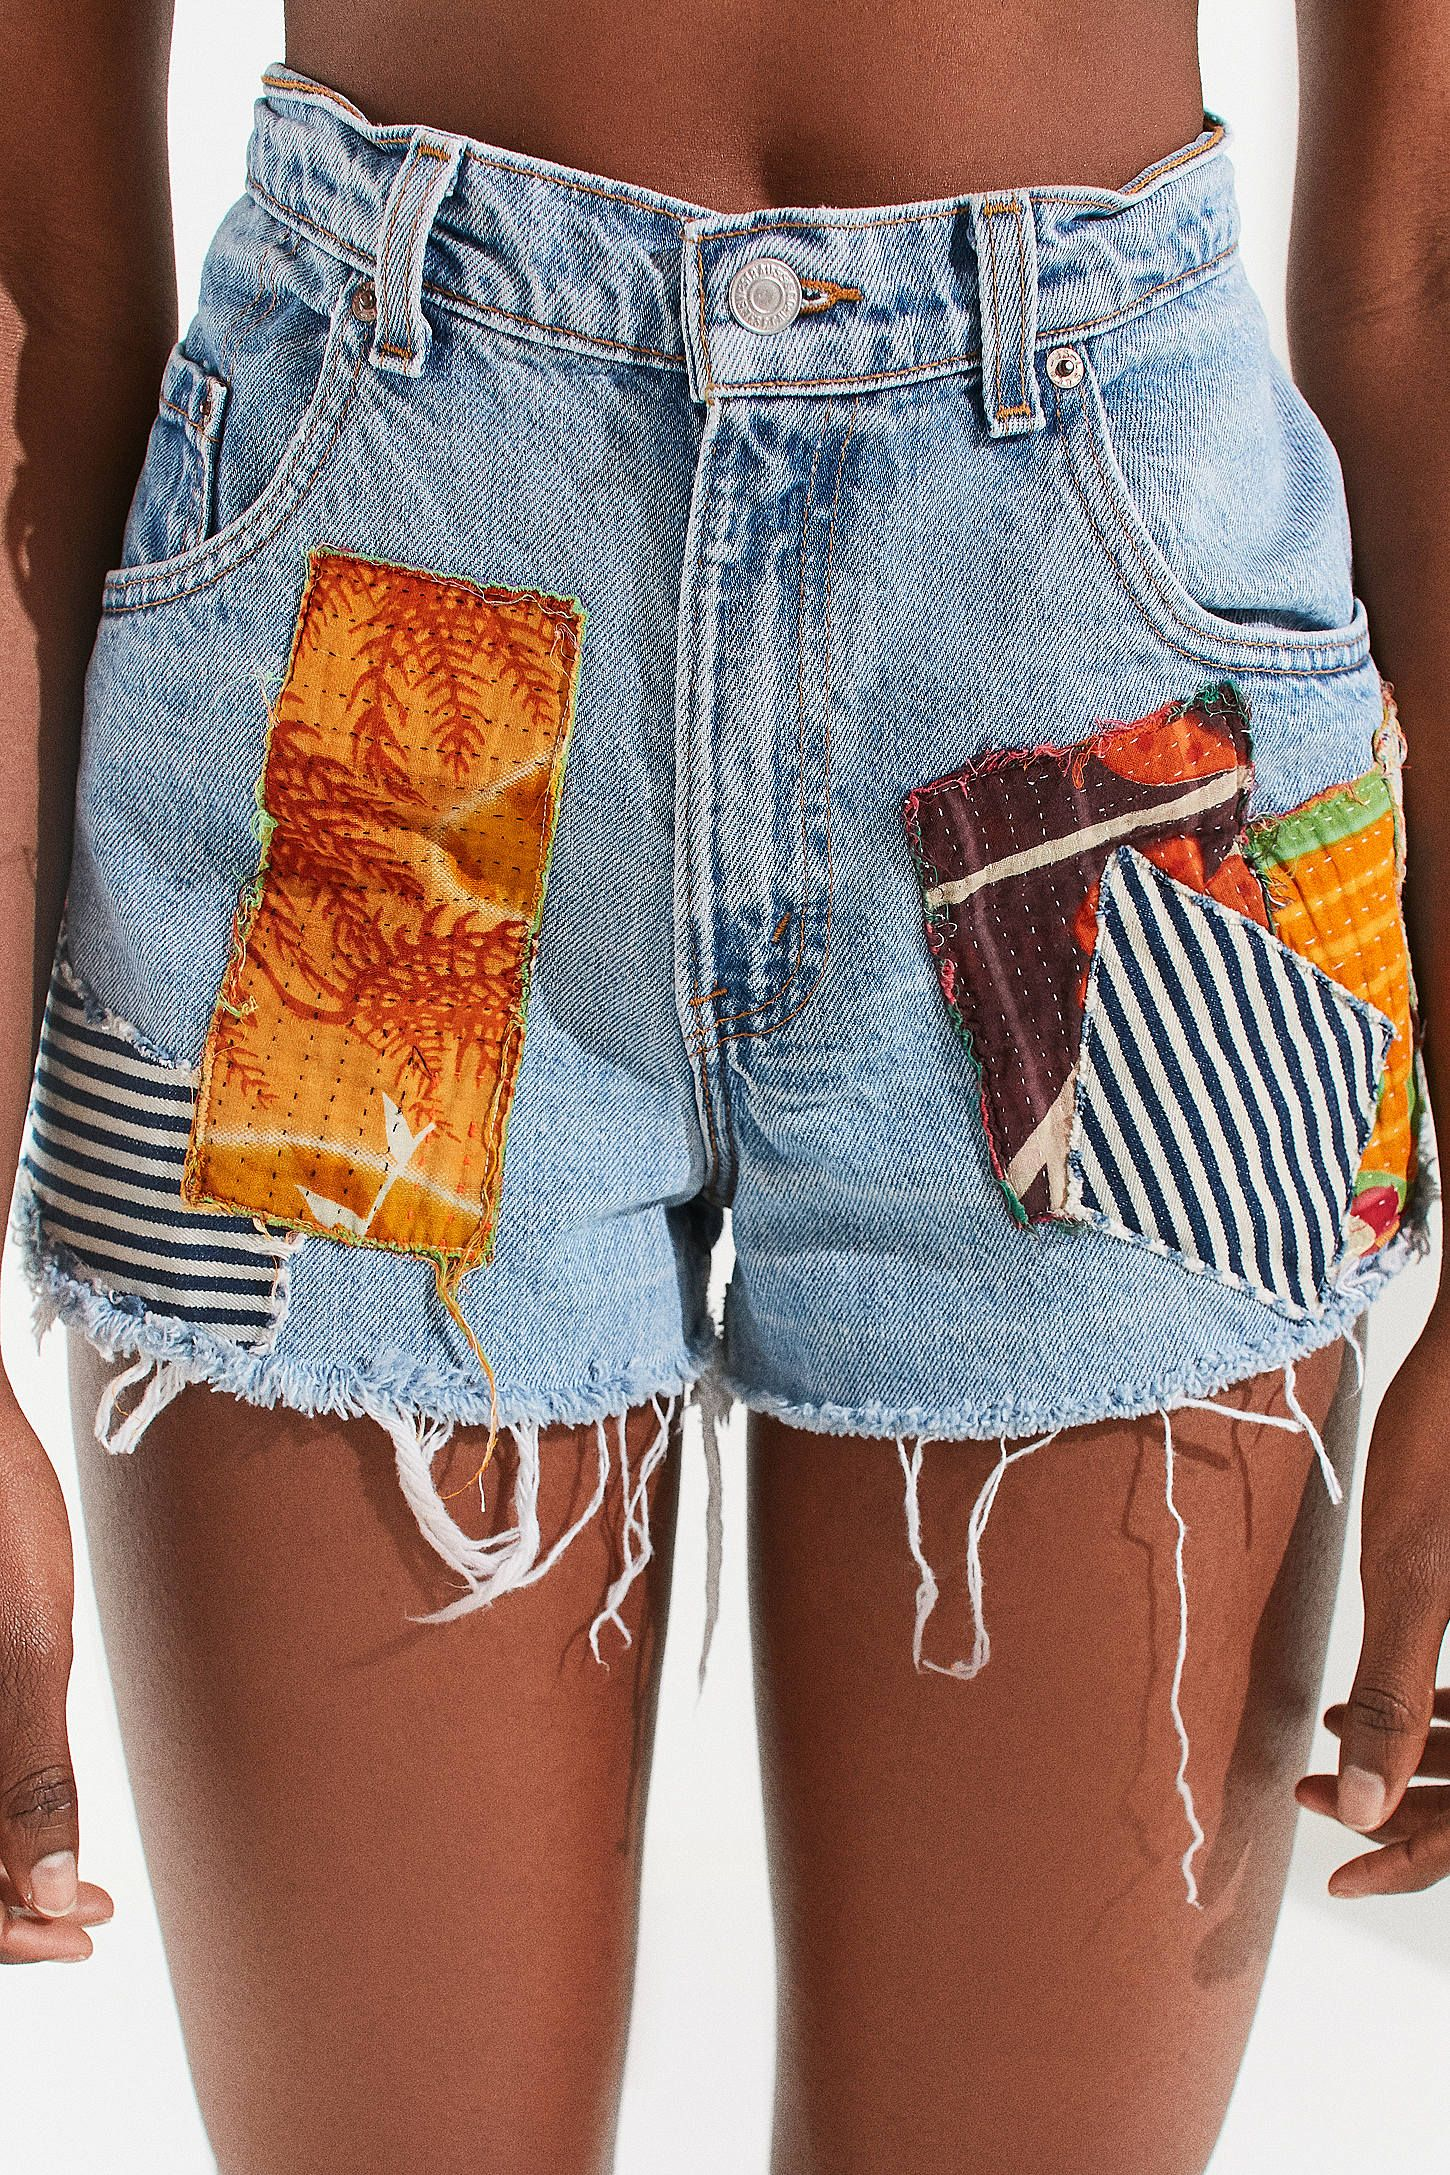 91d88f8d Urban Renewal Remade Quilted Patch Levi's Denim Short | Urban Outfitters